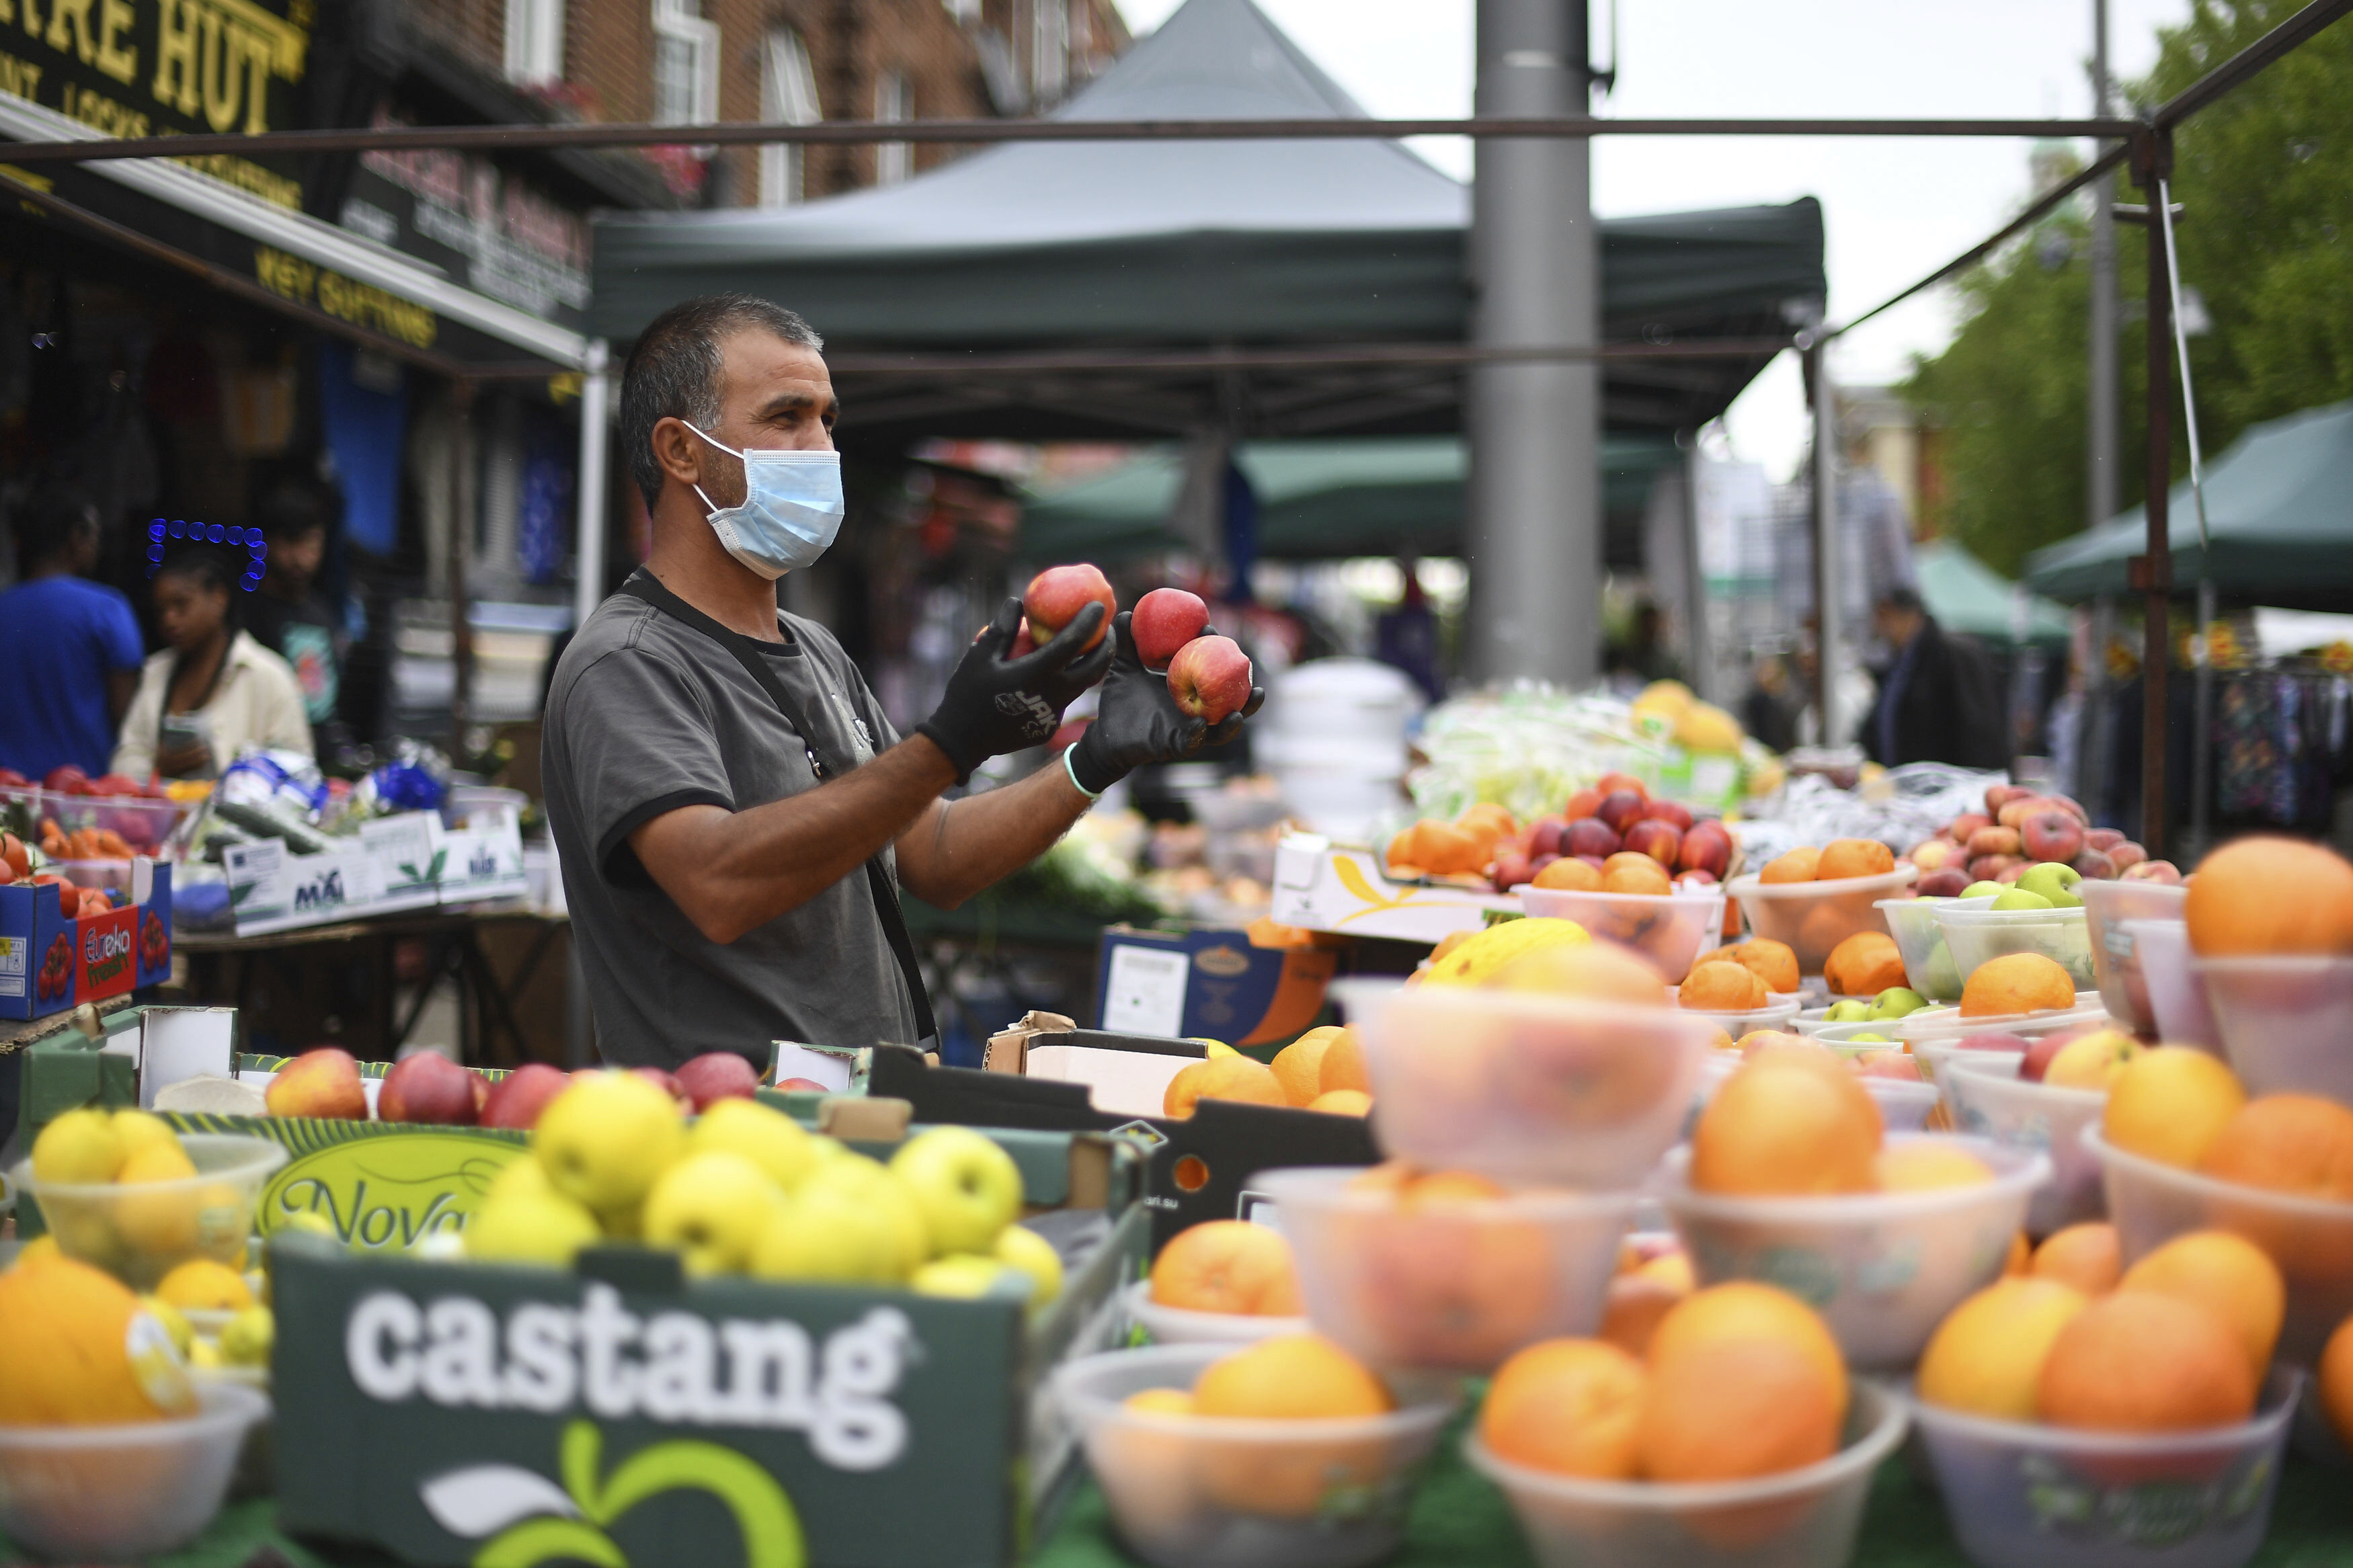 Stalls reopen at Walthamstow Market in east London, the longest street market in Europe, following the introduction of measures to bring England out of lockdown, Wednesday June 3, 2020.  The highly contagious COVID-19 coronavirus has impacted on Britain with self isolation and social distancing when people move from their homes. (Victoria Jones / PA via AP)